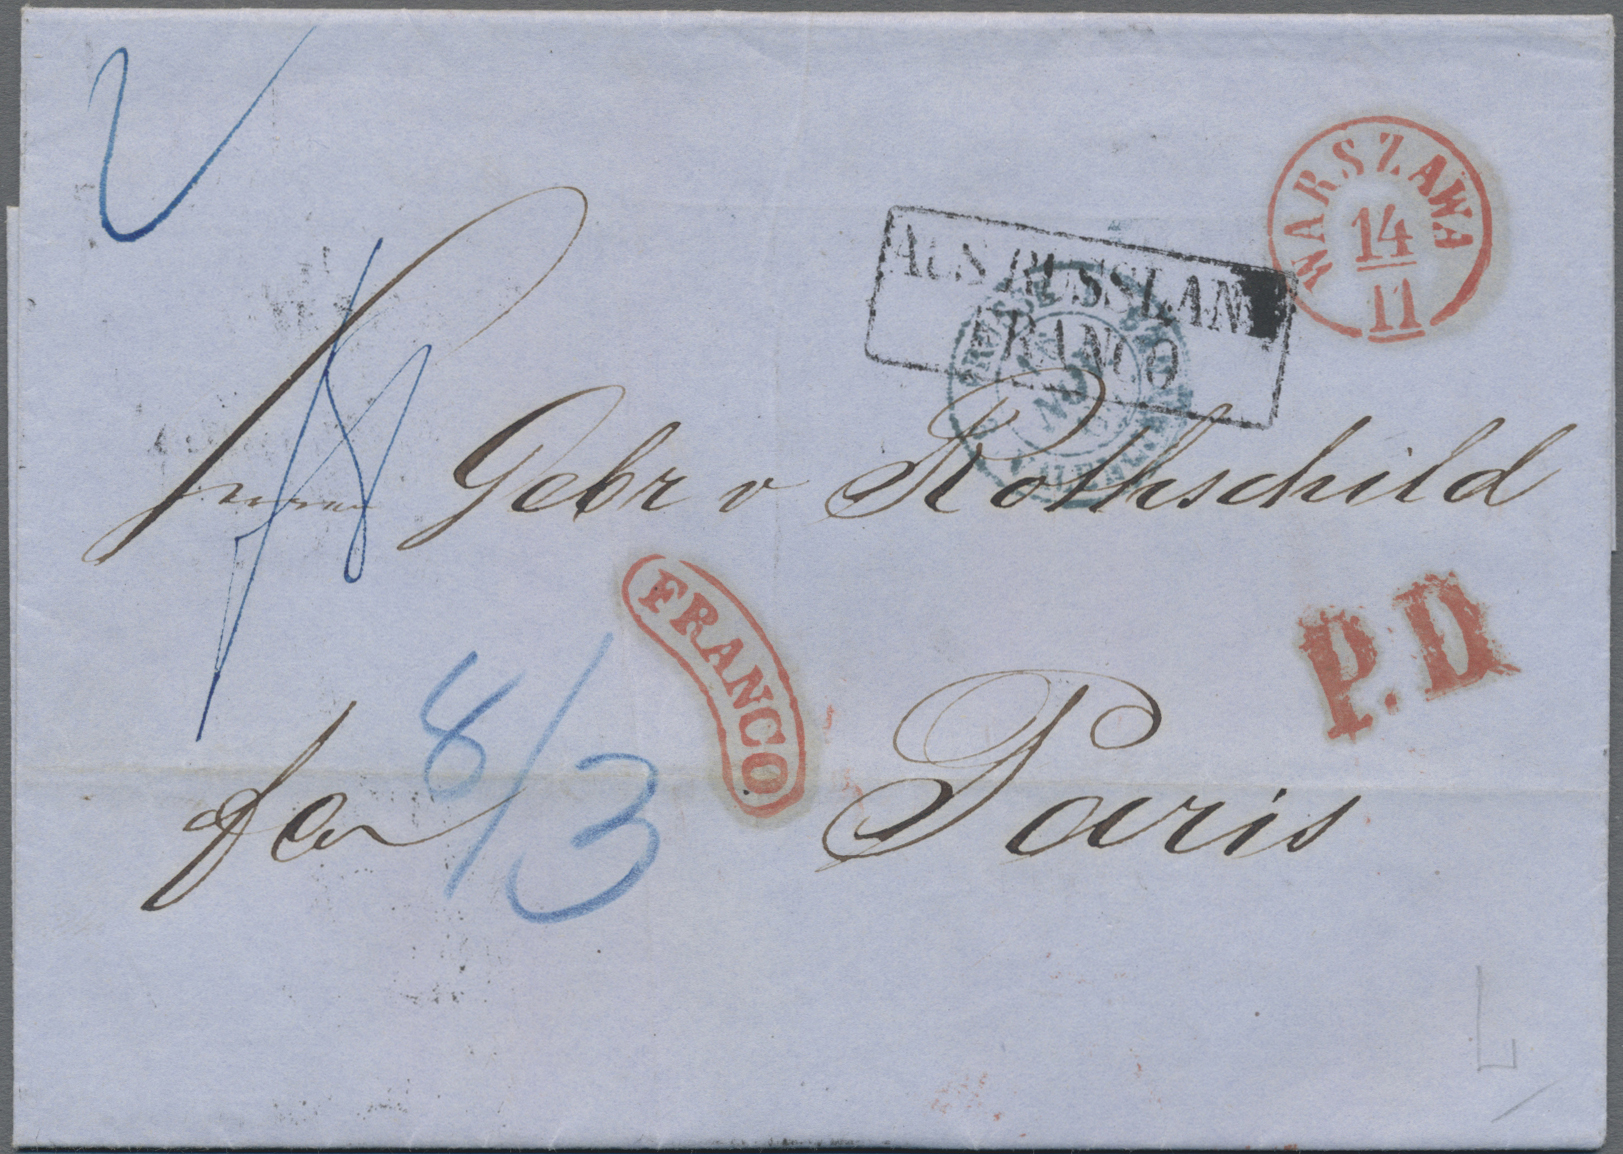 Lot 09500 - Polen - Russische Periode  -  Auktionshaus Christoph Gärtner GmbH & Co. KG 50th Auction Anniversary Auction - Day 3